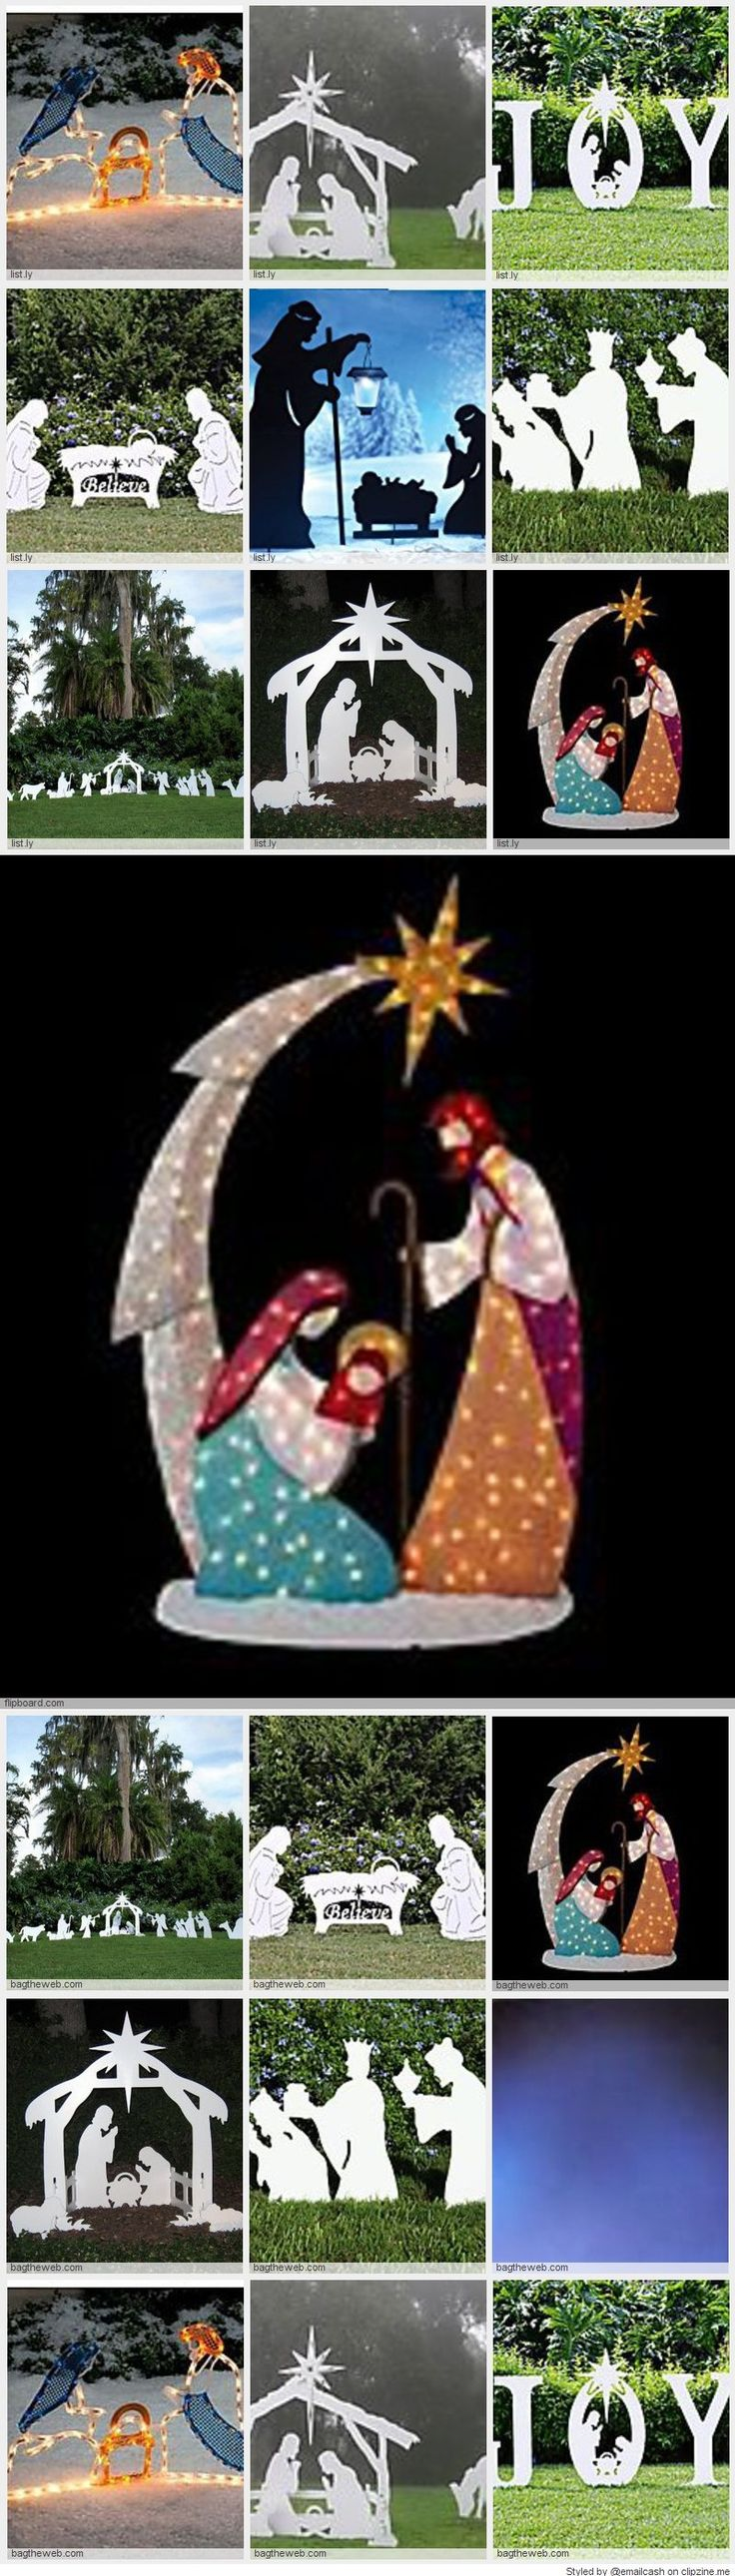 Nativity Silhouette Yard Decoration - Some lighted outdoor nativity scenes are very large so make sure that you get one that fits well in you yard and looks good with your house and lawn. Most are easy to assemble and break down for easy storage once Christmas is over.